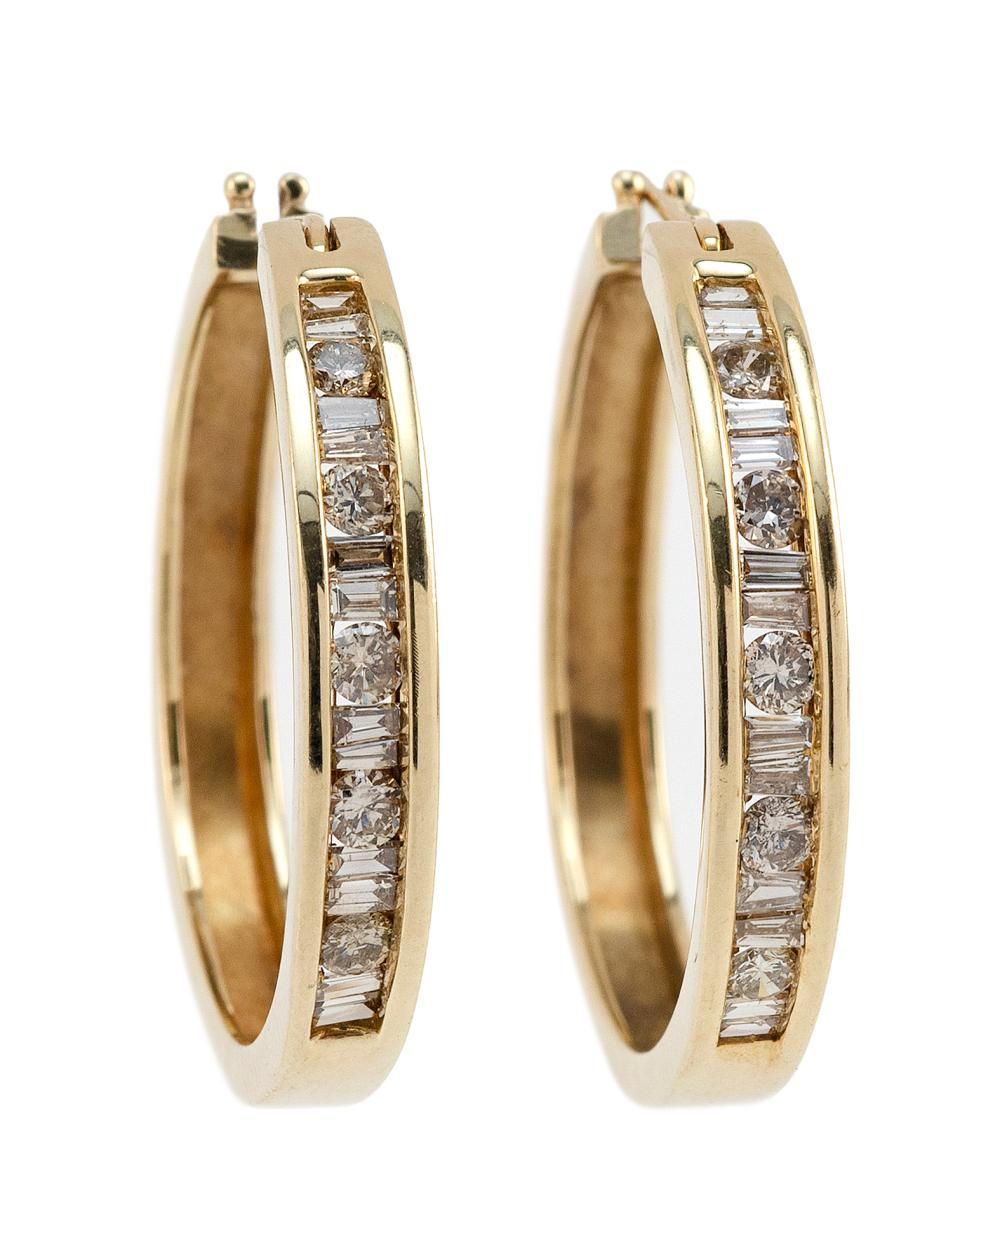 PAIR OF 10KT GOLD AND DIAMOND EARRINGS Approx. 5.39 total dwt.